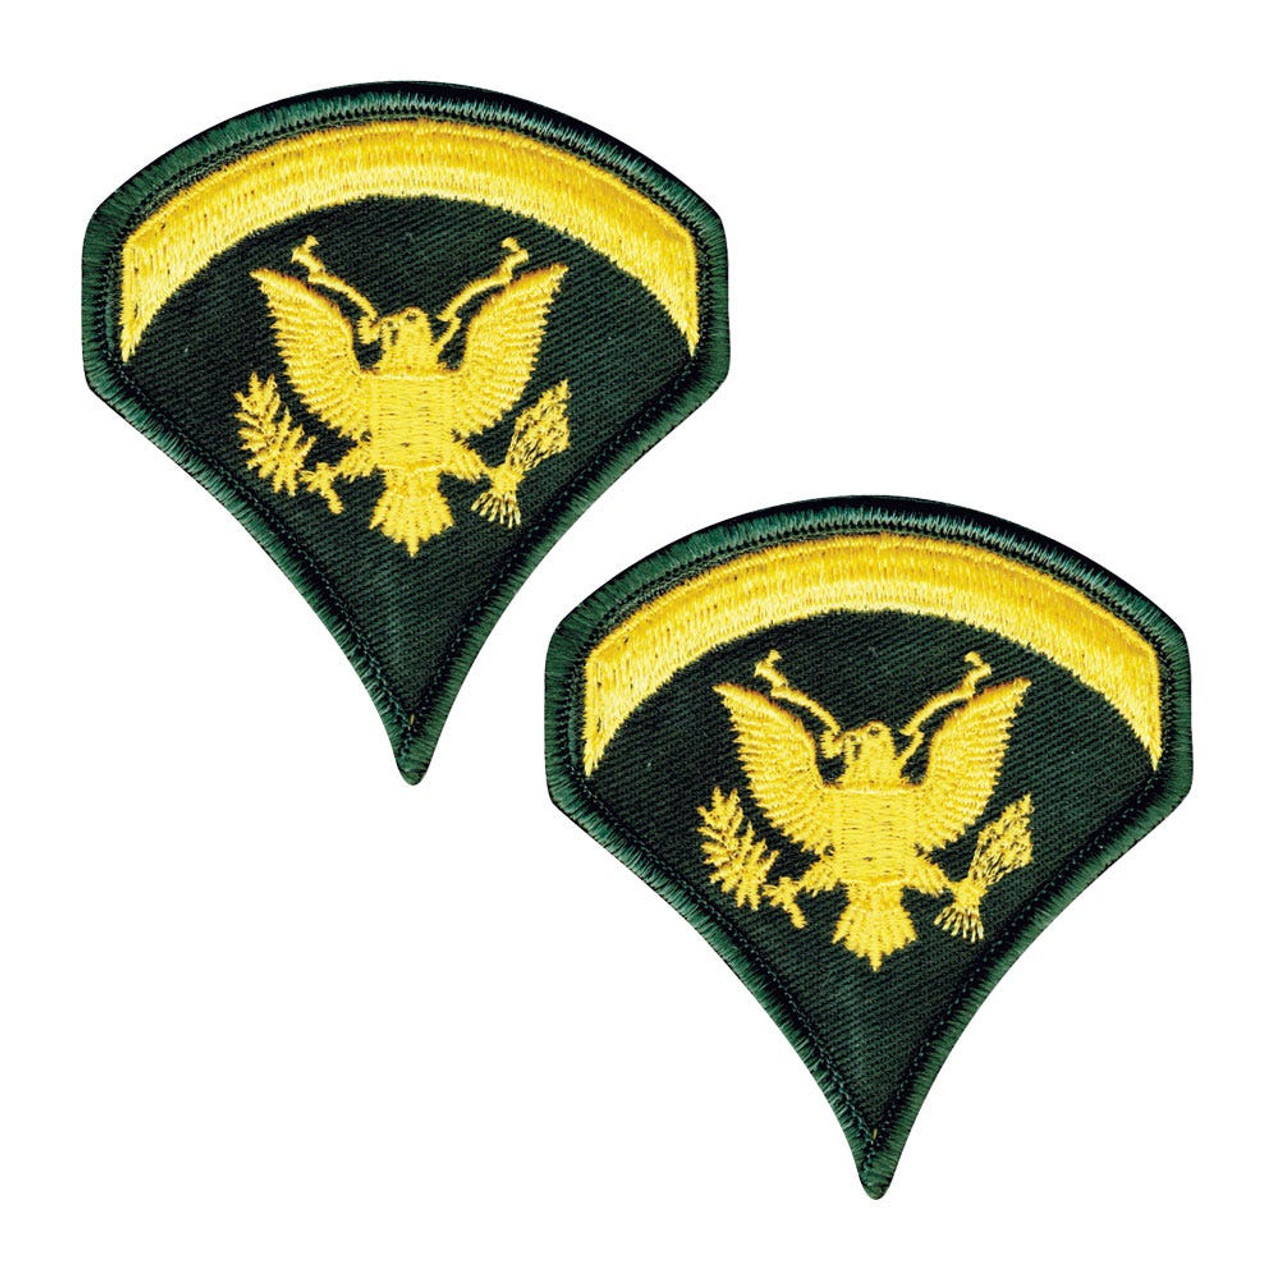 Sleeve Rank Insignia - Gold on Green from Hessen Tactical